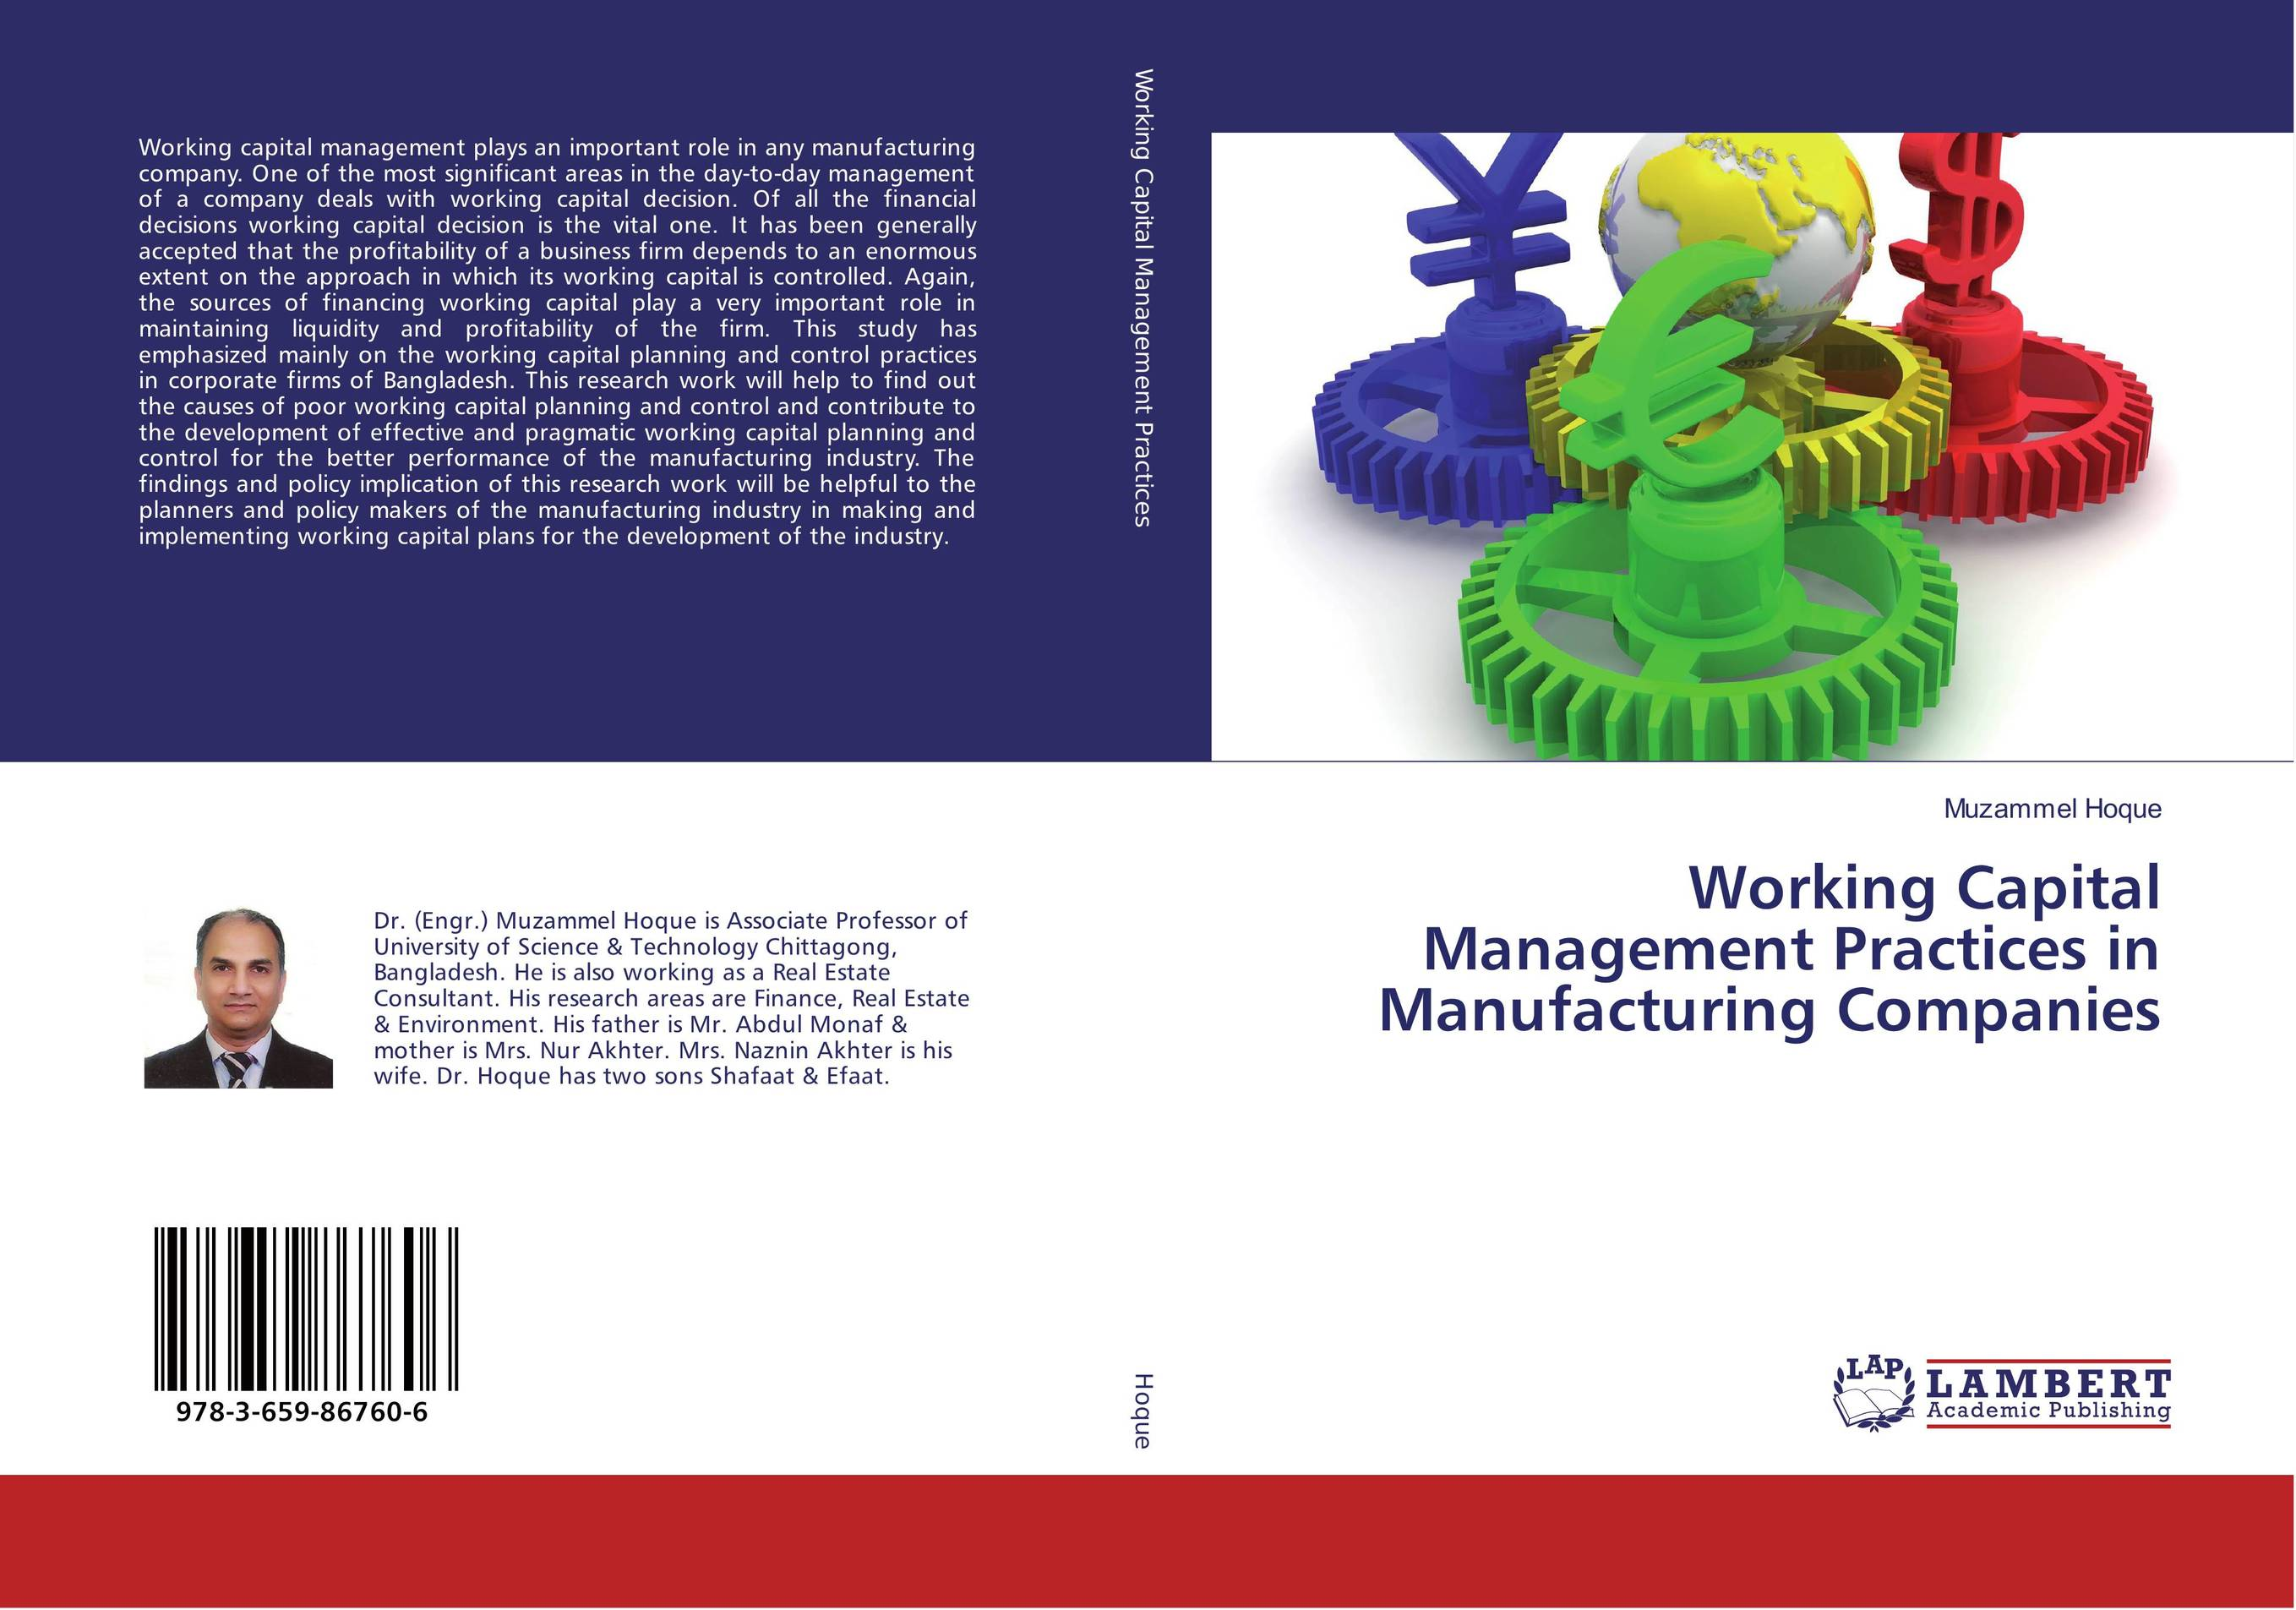 Working Capital Management Practices in Manufacturing Companies цены